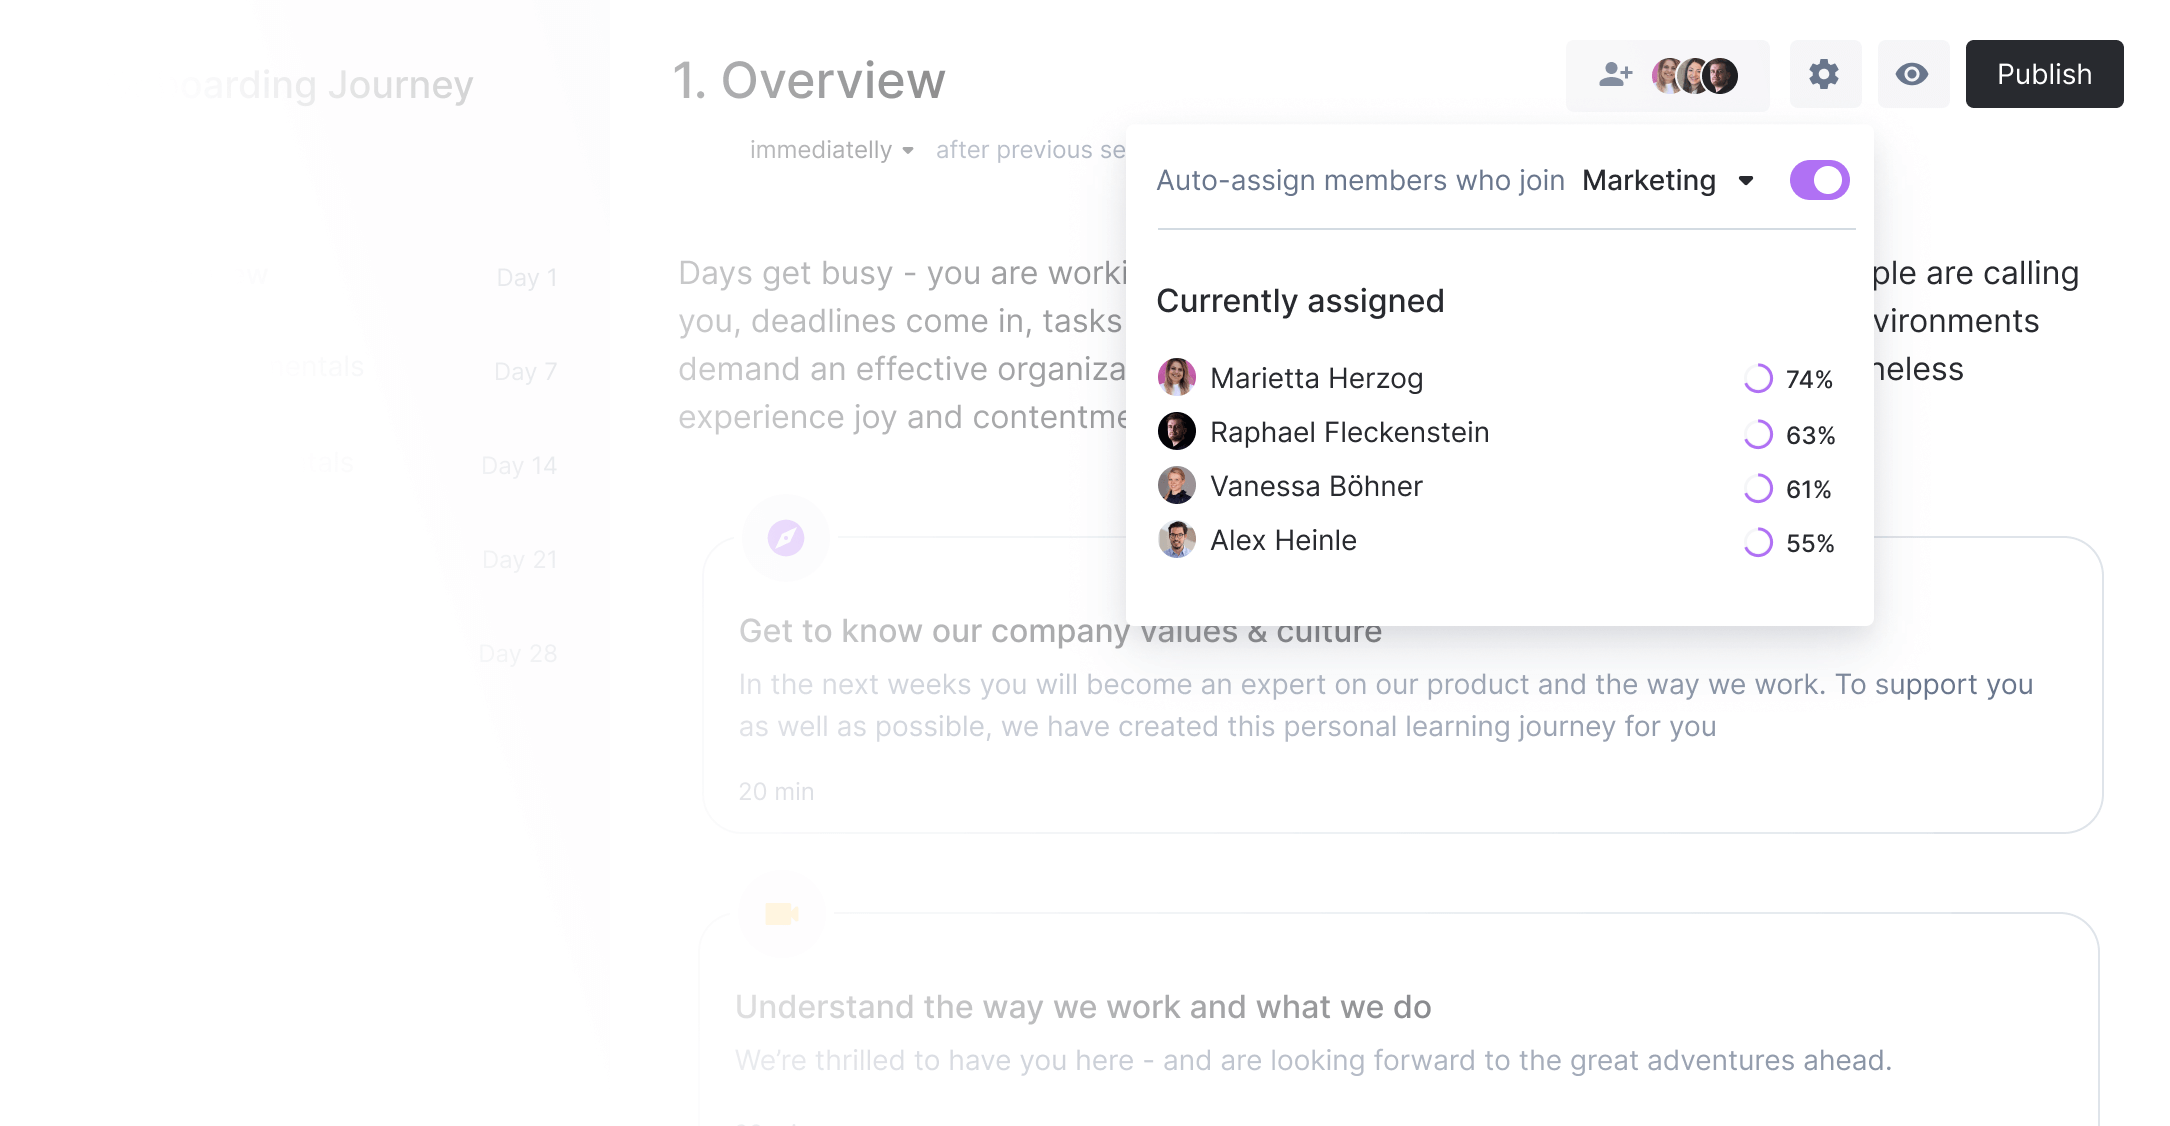 Assigning a journey to an employee to then receive automated reminders. Progress is shown on a new hire level.